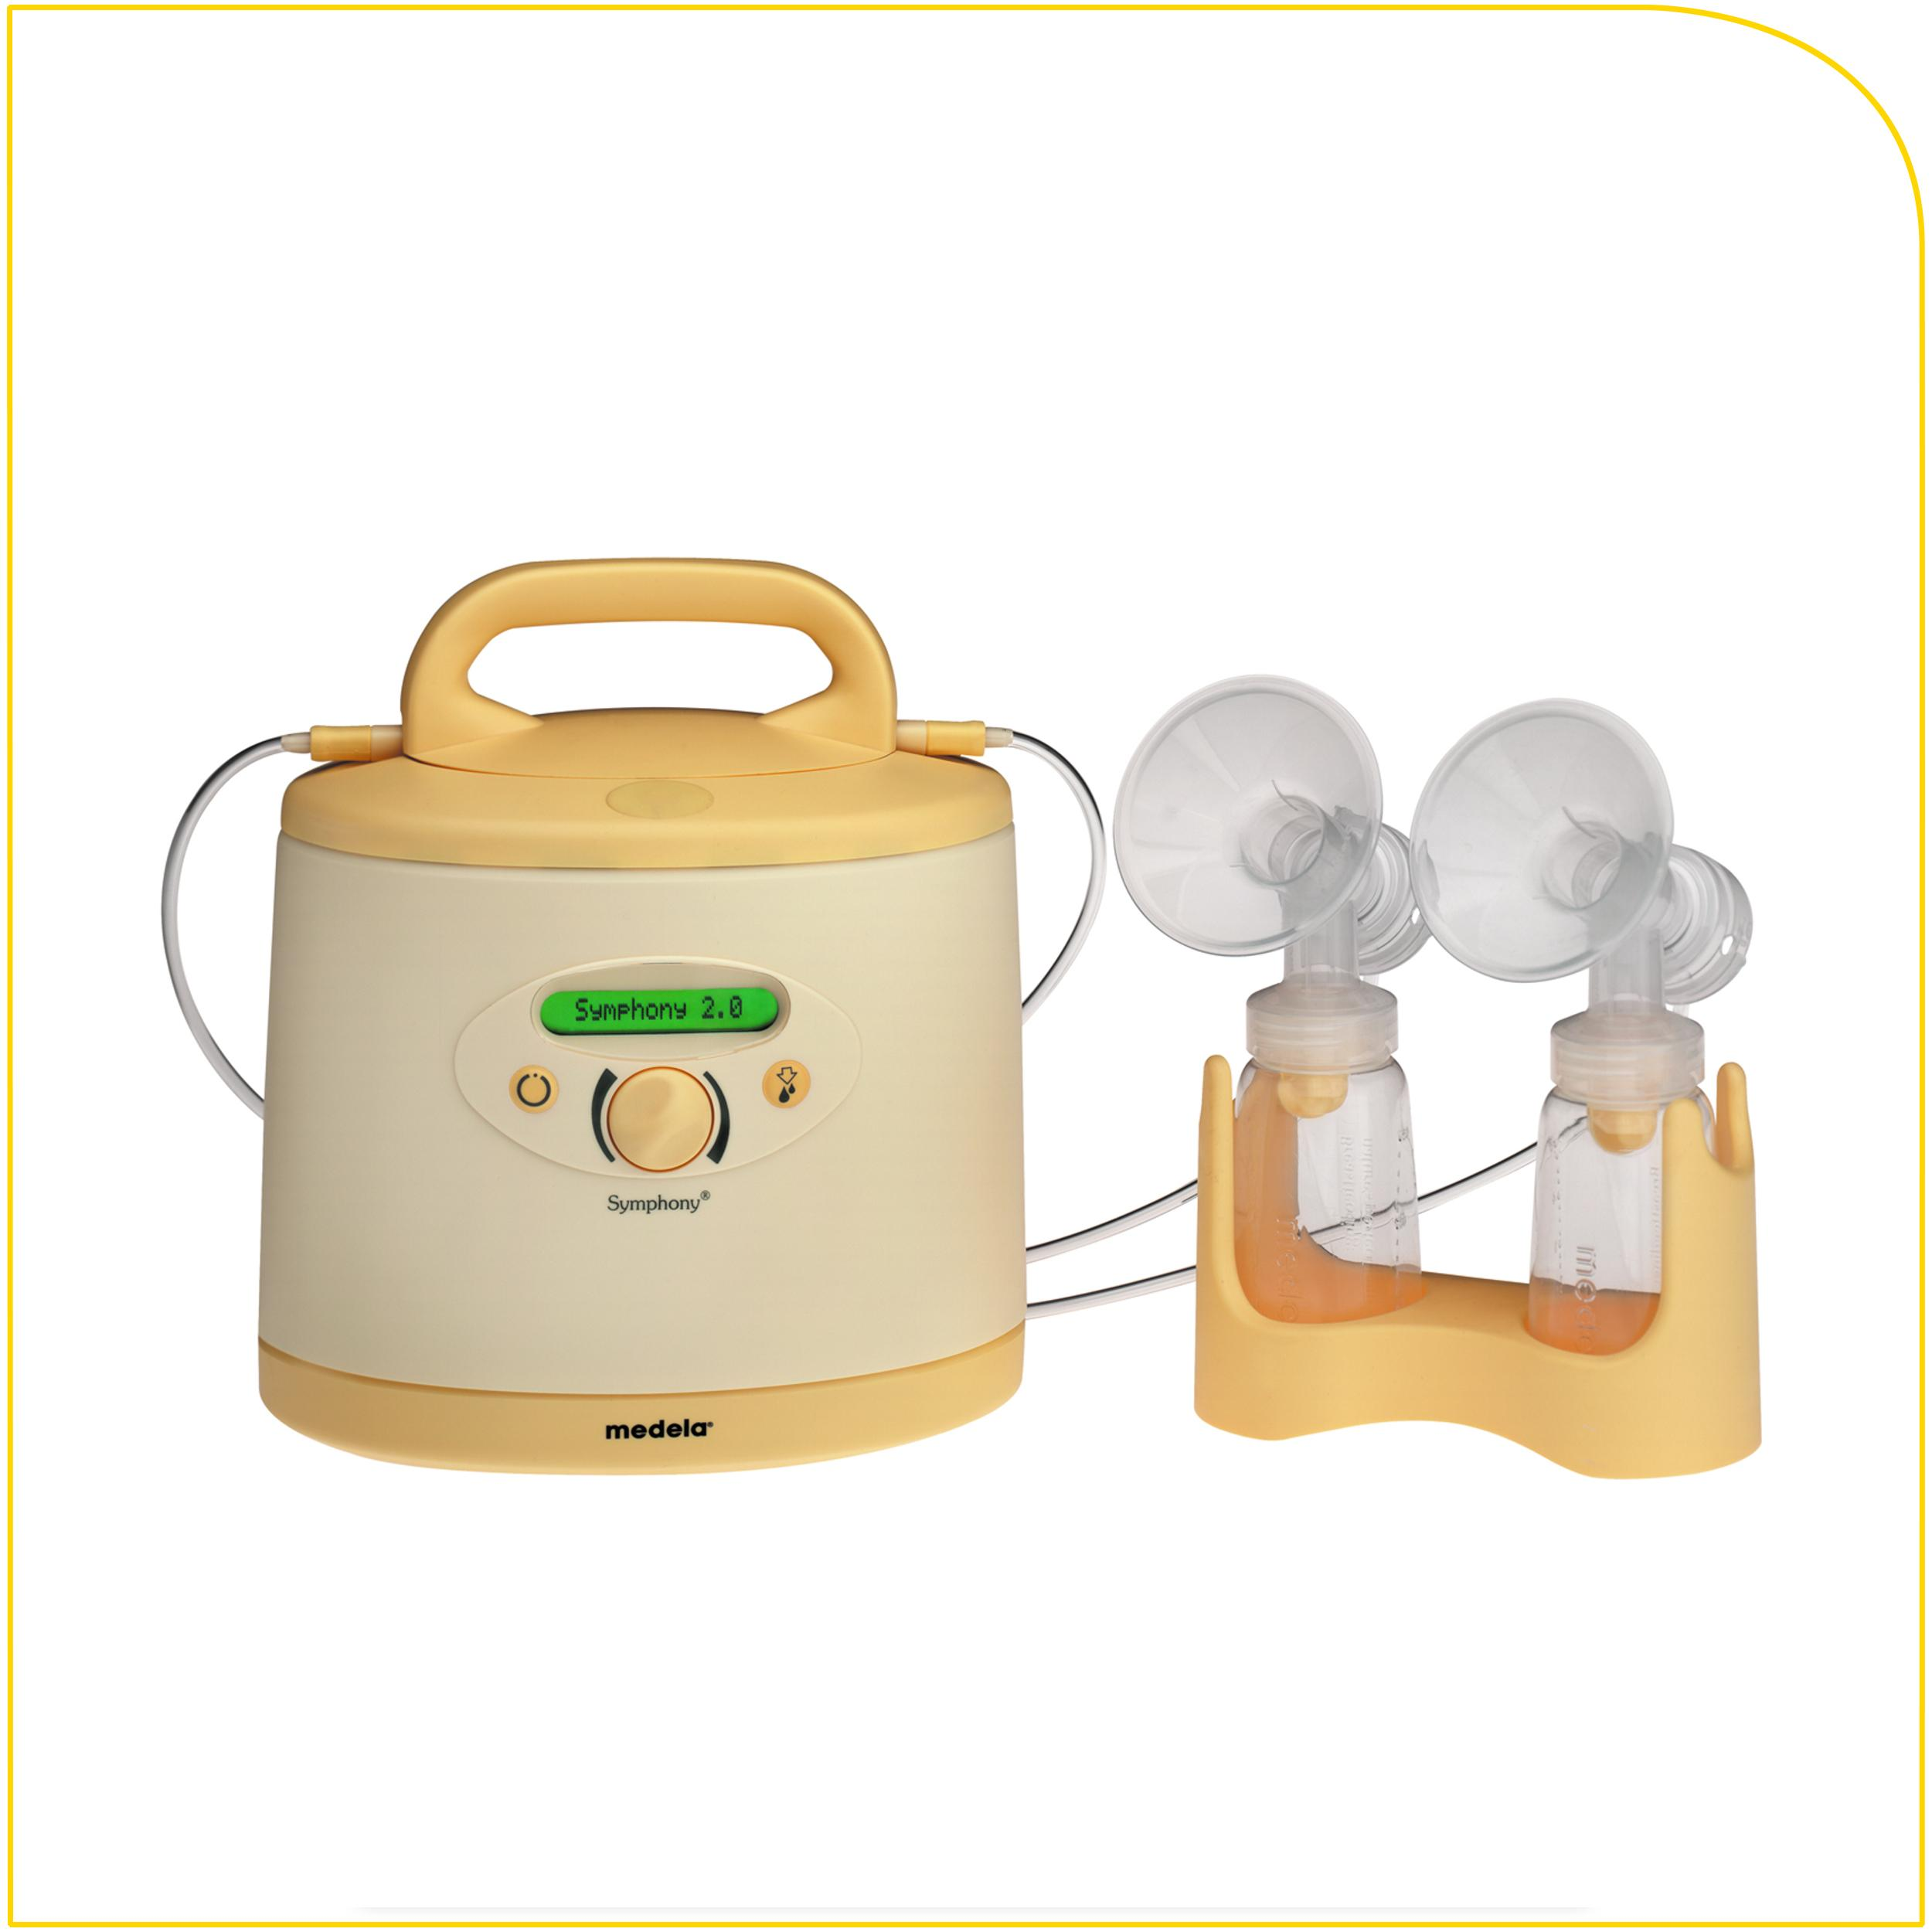 Amazon Com Medela Symphony Breast Pump Hospital Grade Breast Pump